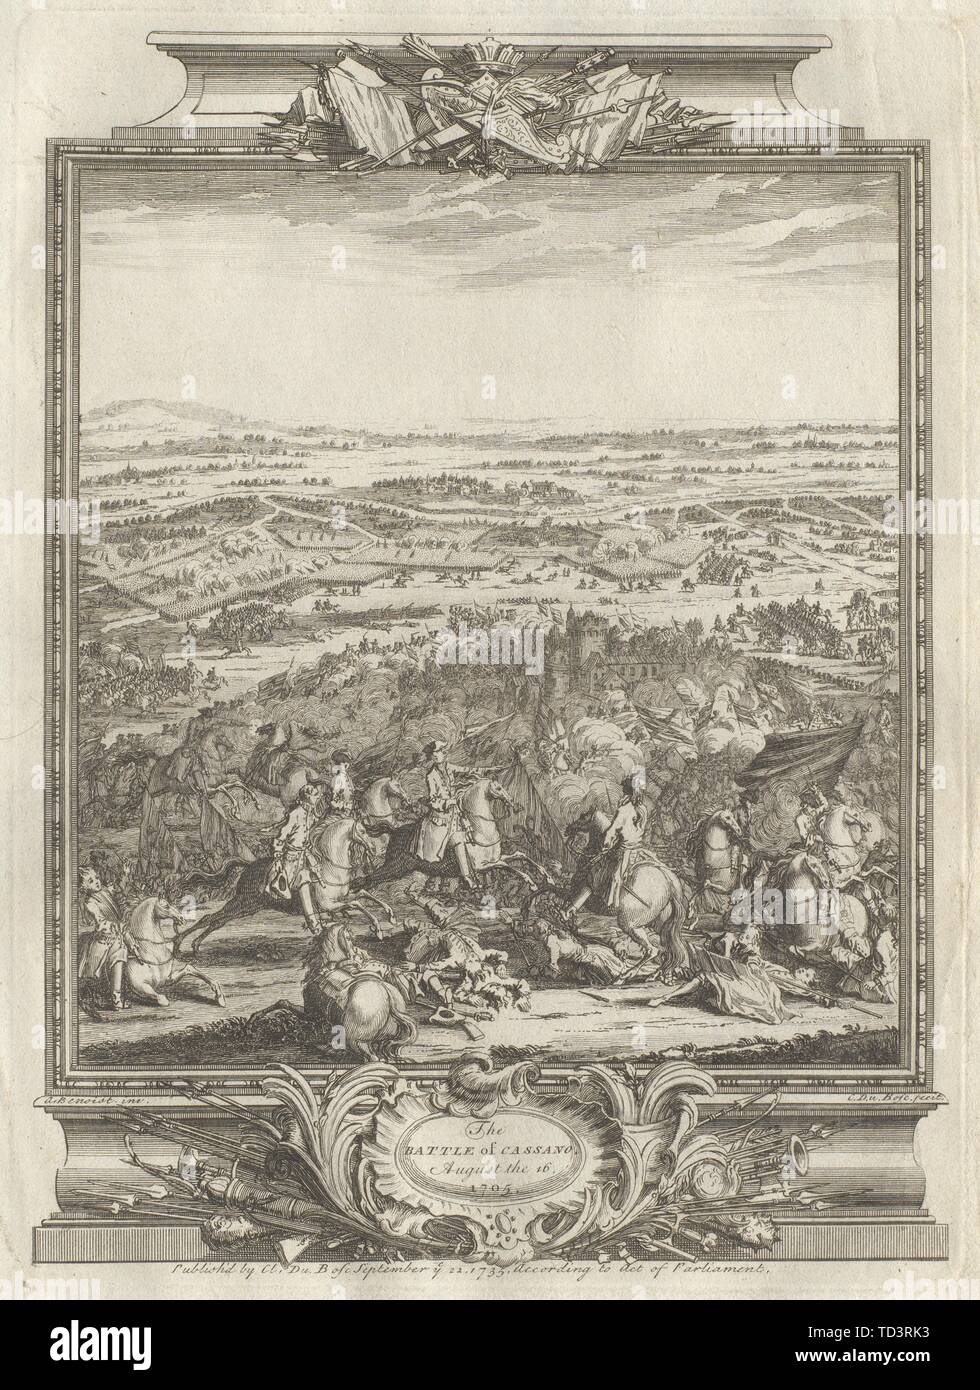 The Battle of Cassano August the 16, 1705. Cassano d'Adda,Lombardy 1736 print Stock Photo